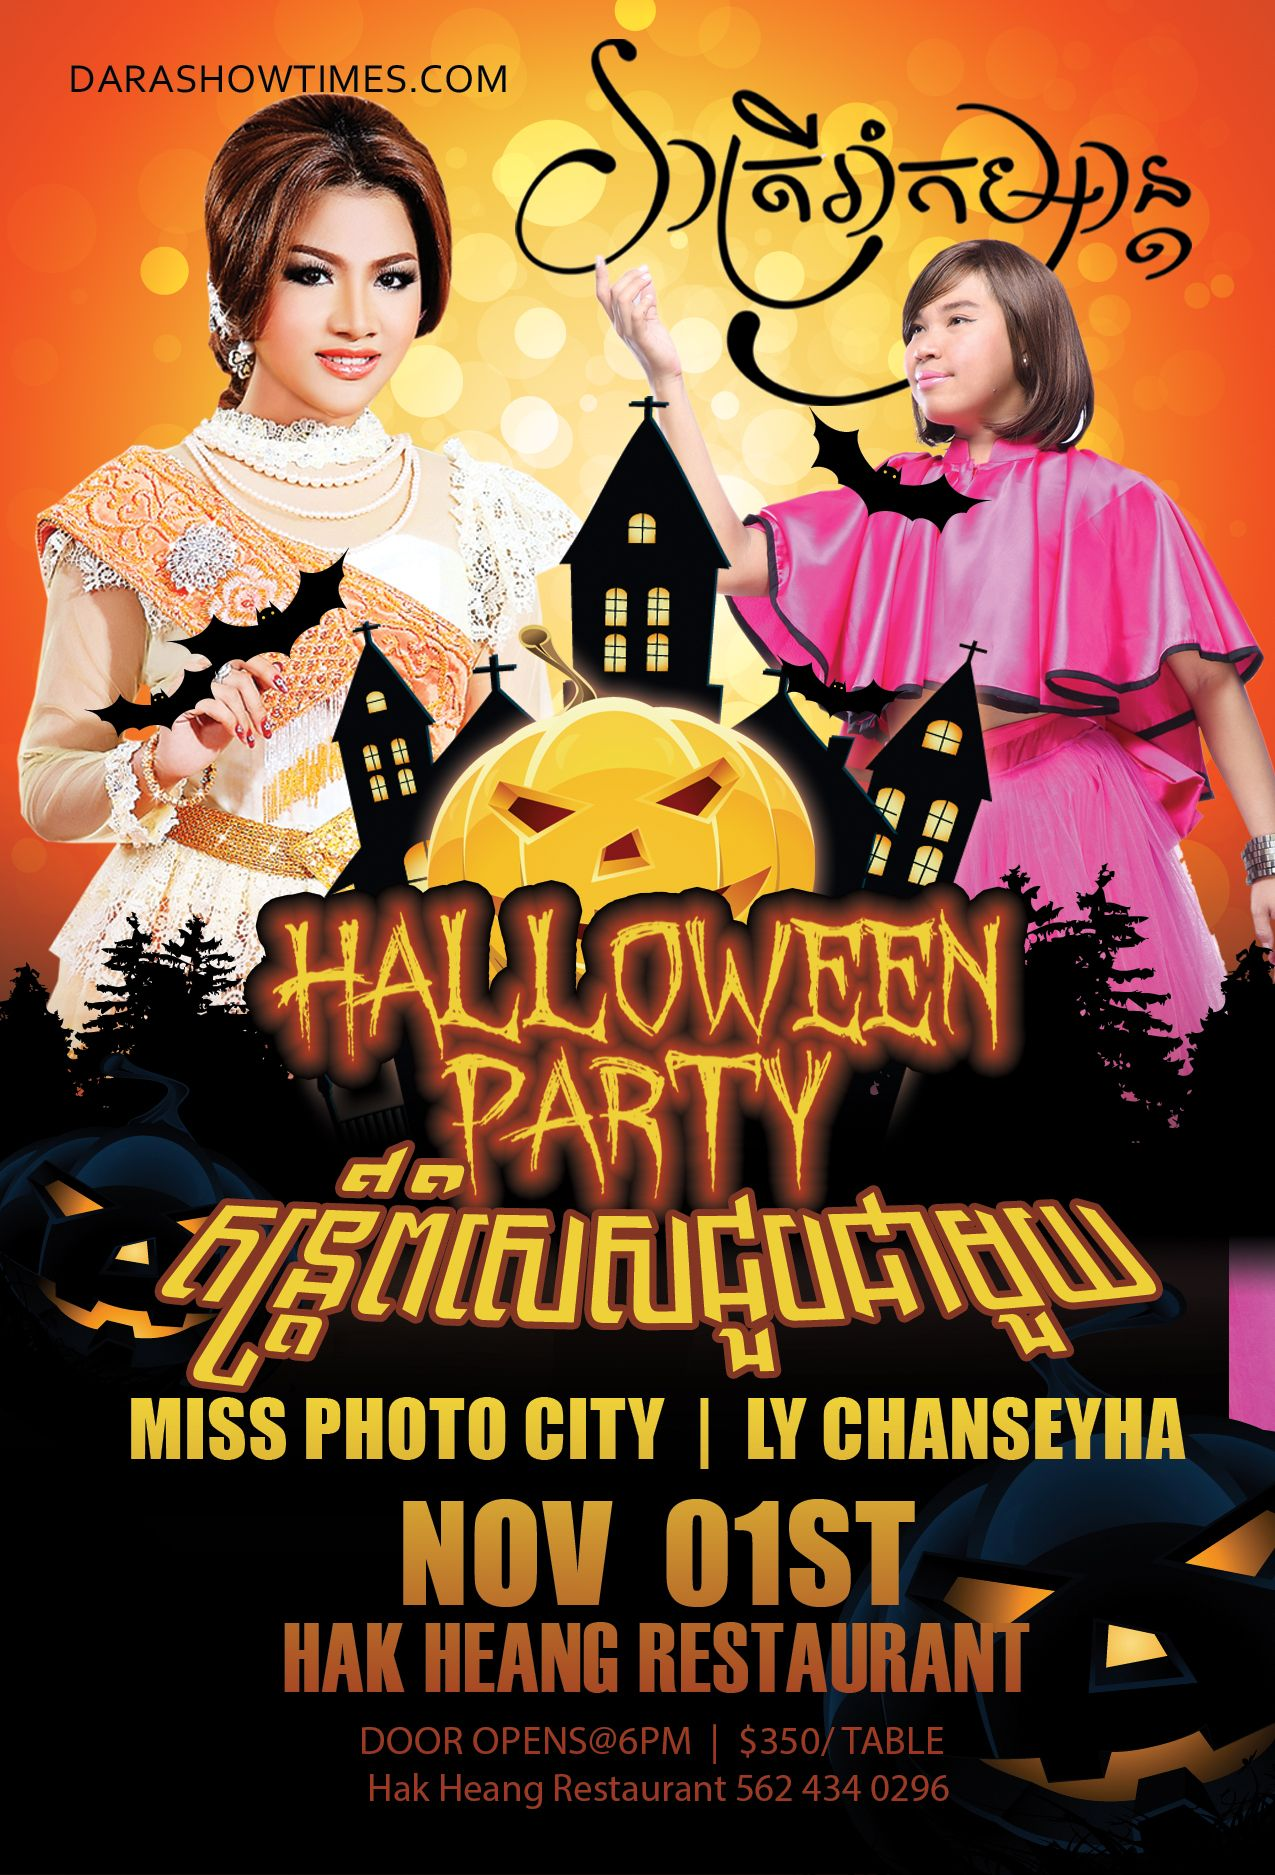 Halloween Party at the HAK HEANG Restaurant With Miss Photo City ...